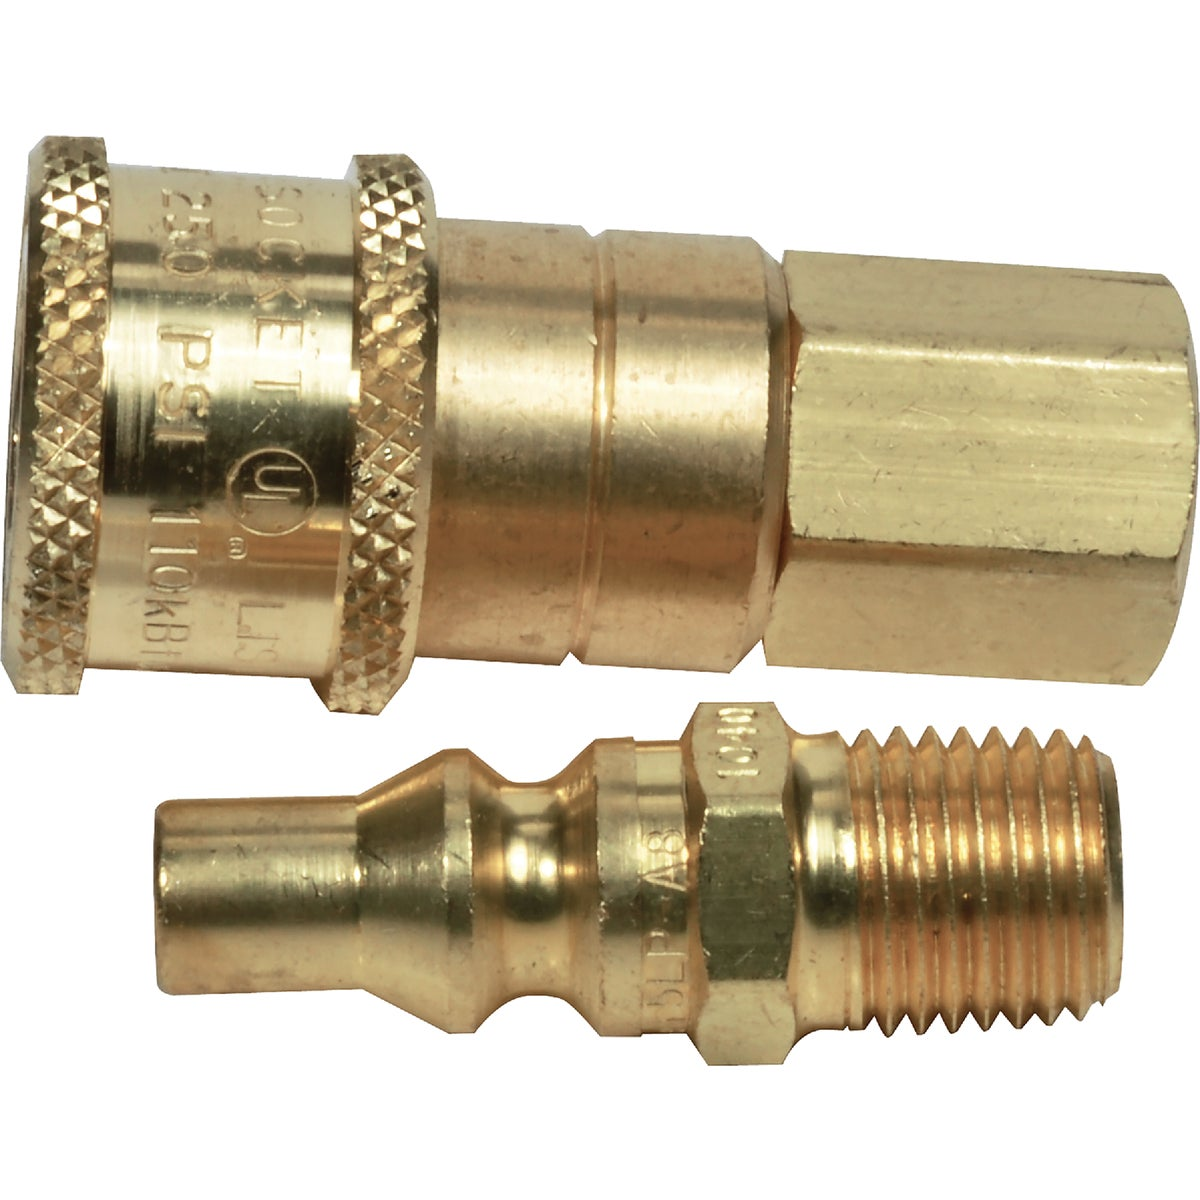 "1/4"" GAS CONNECTOR"